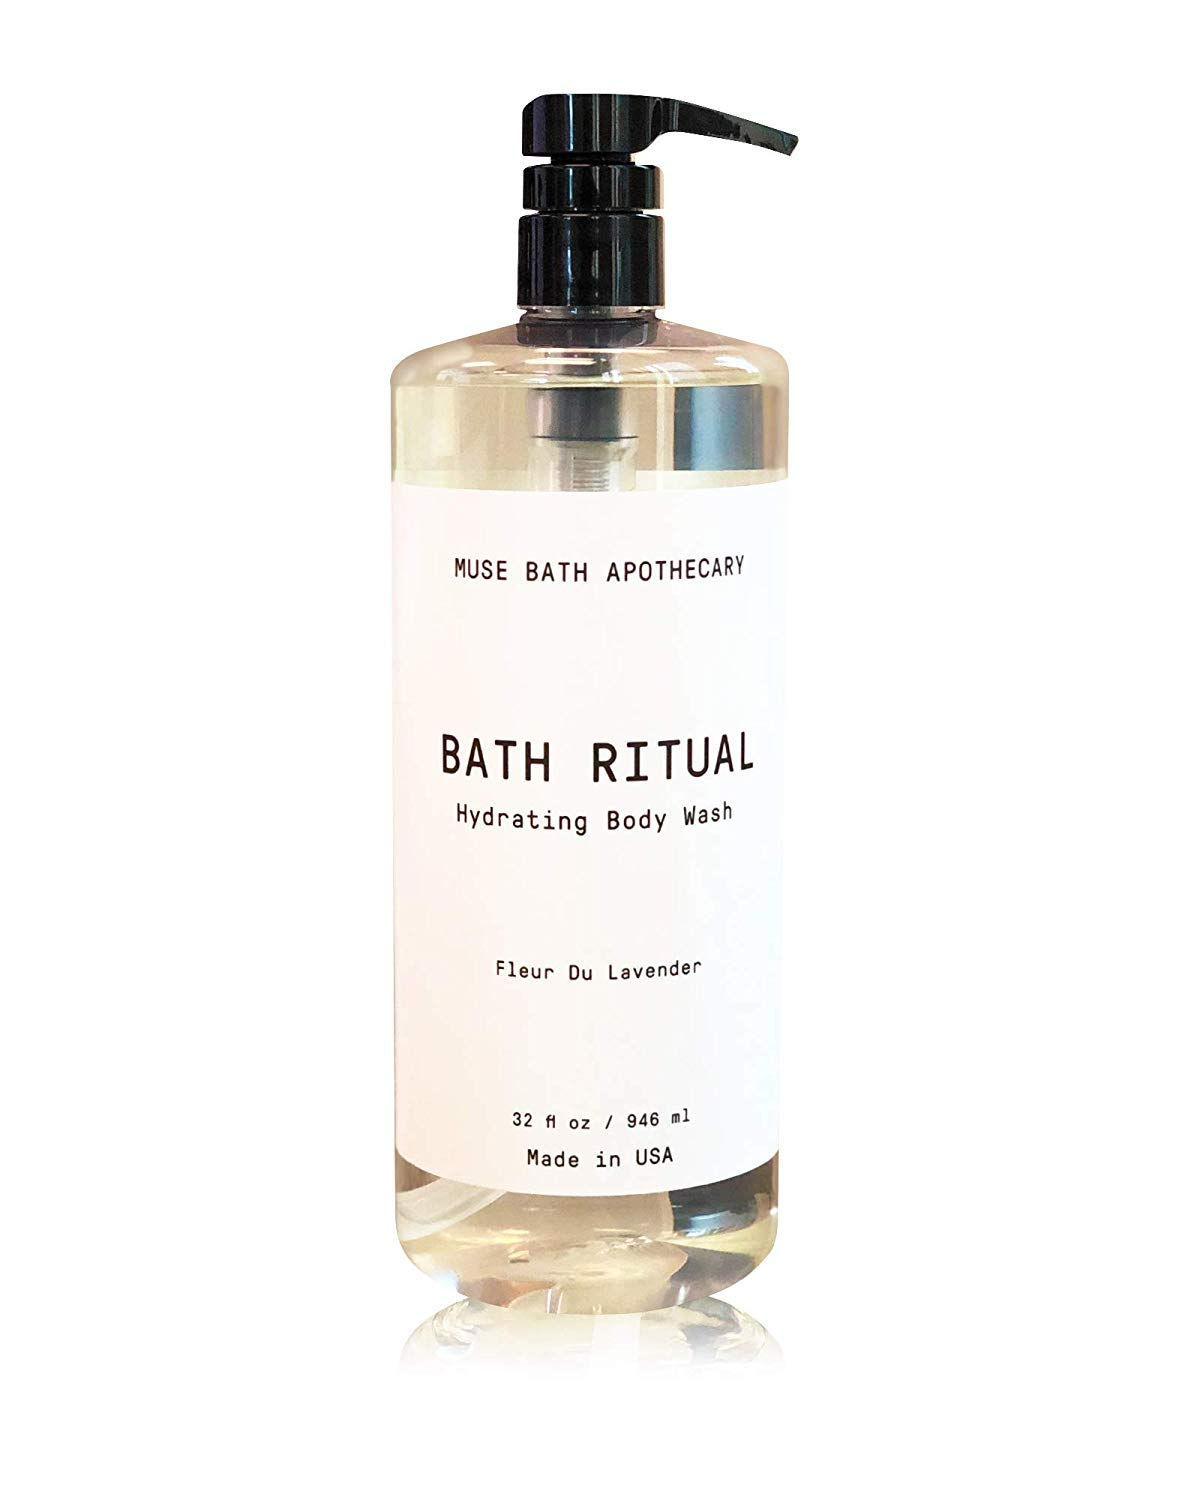 Muse Bath Apothecary Bath Ritual - Aromatic and Hydrating Body Wash, 32 oz, Infused with Natural Essential Oils - Fleur du Lavender